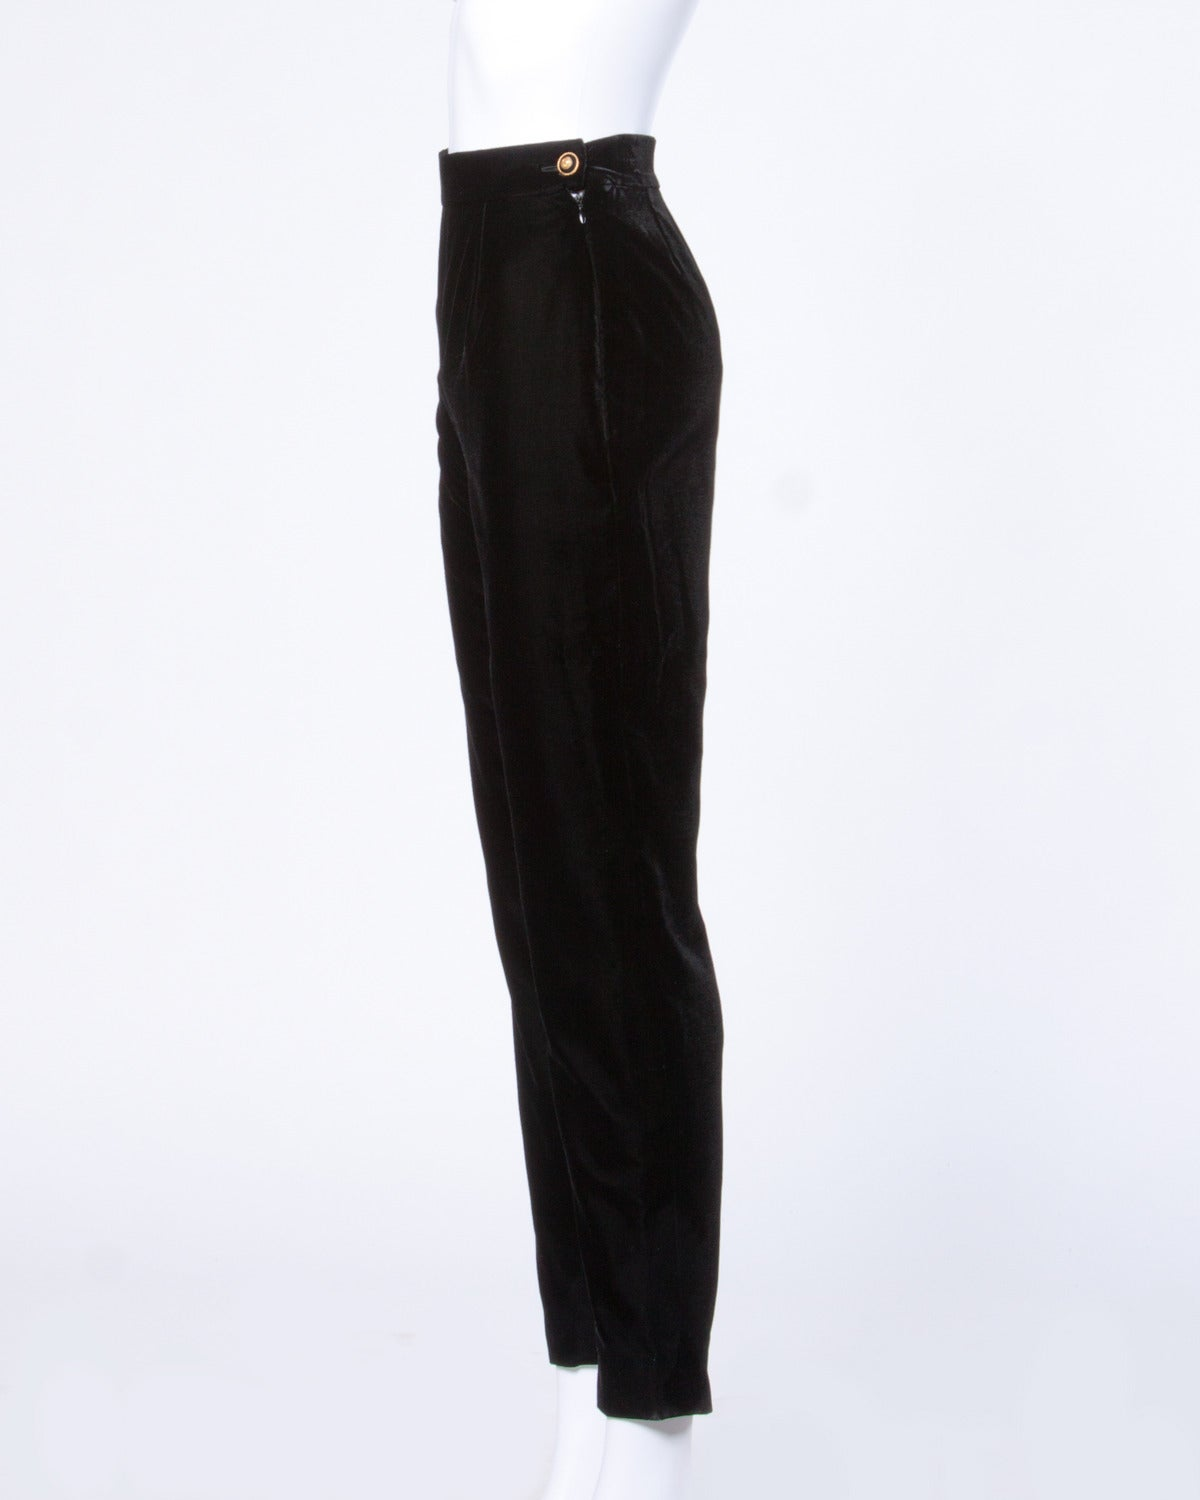 A/W 1993 Chanel Vintage Black Velvet High Waist Drainpipe Pants In Excellent Condition For Sale In Sparks, NV